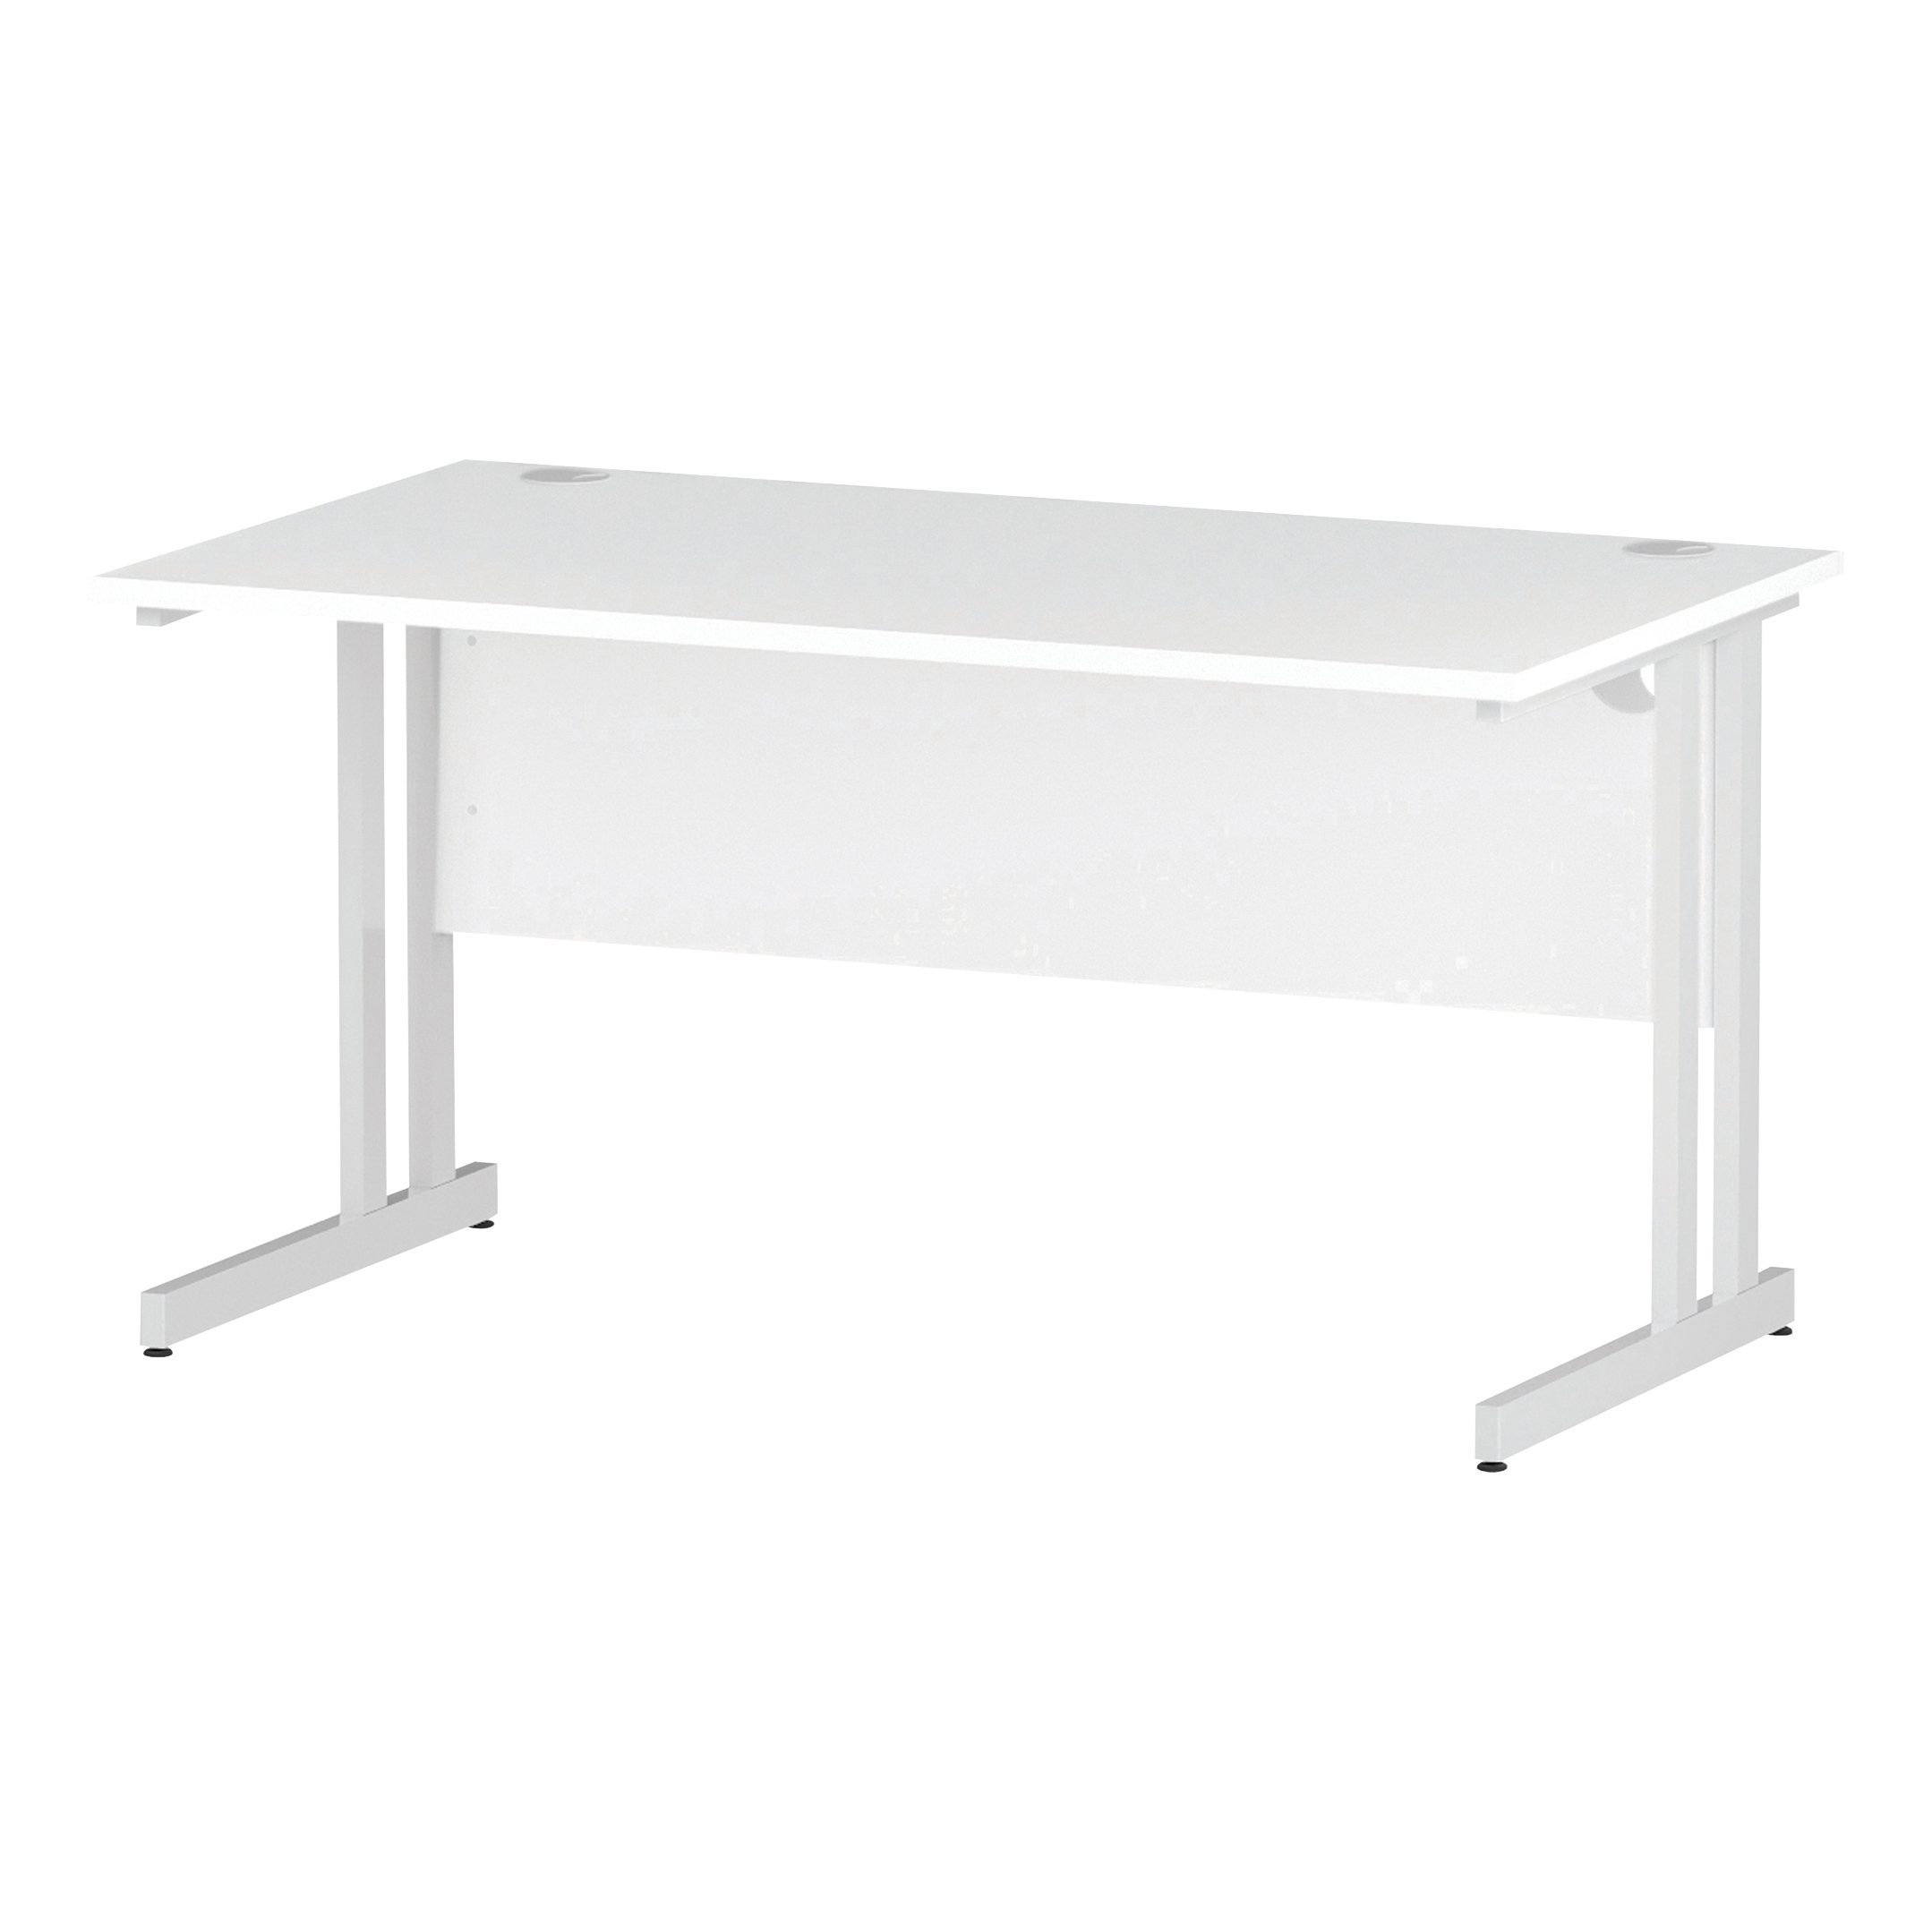 Trexus Rectangular Desk White Cantilever Leg 1400x800mm White Ref I002192